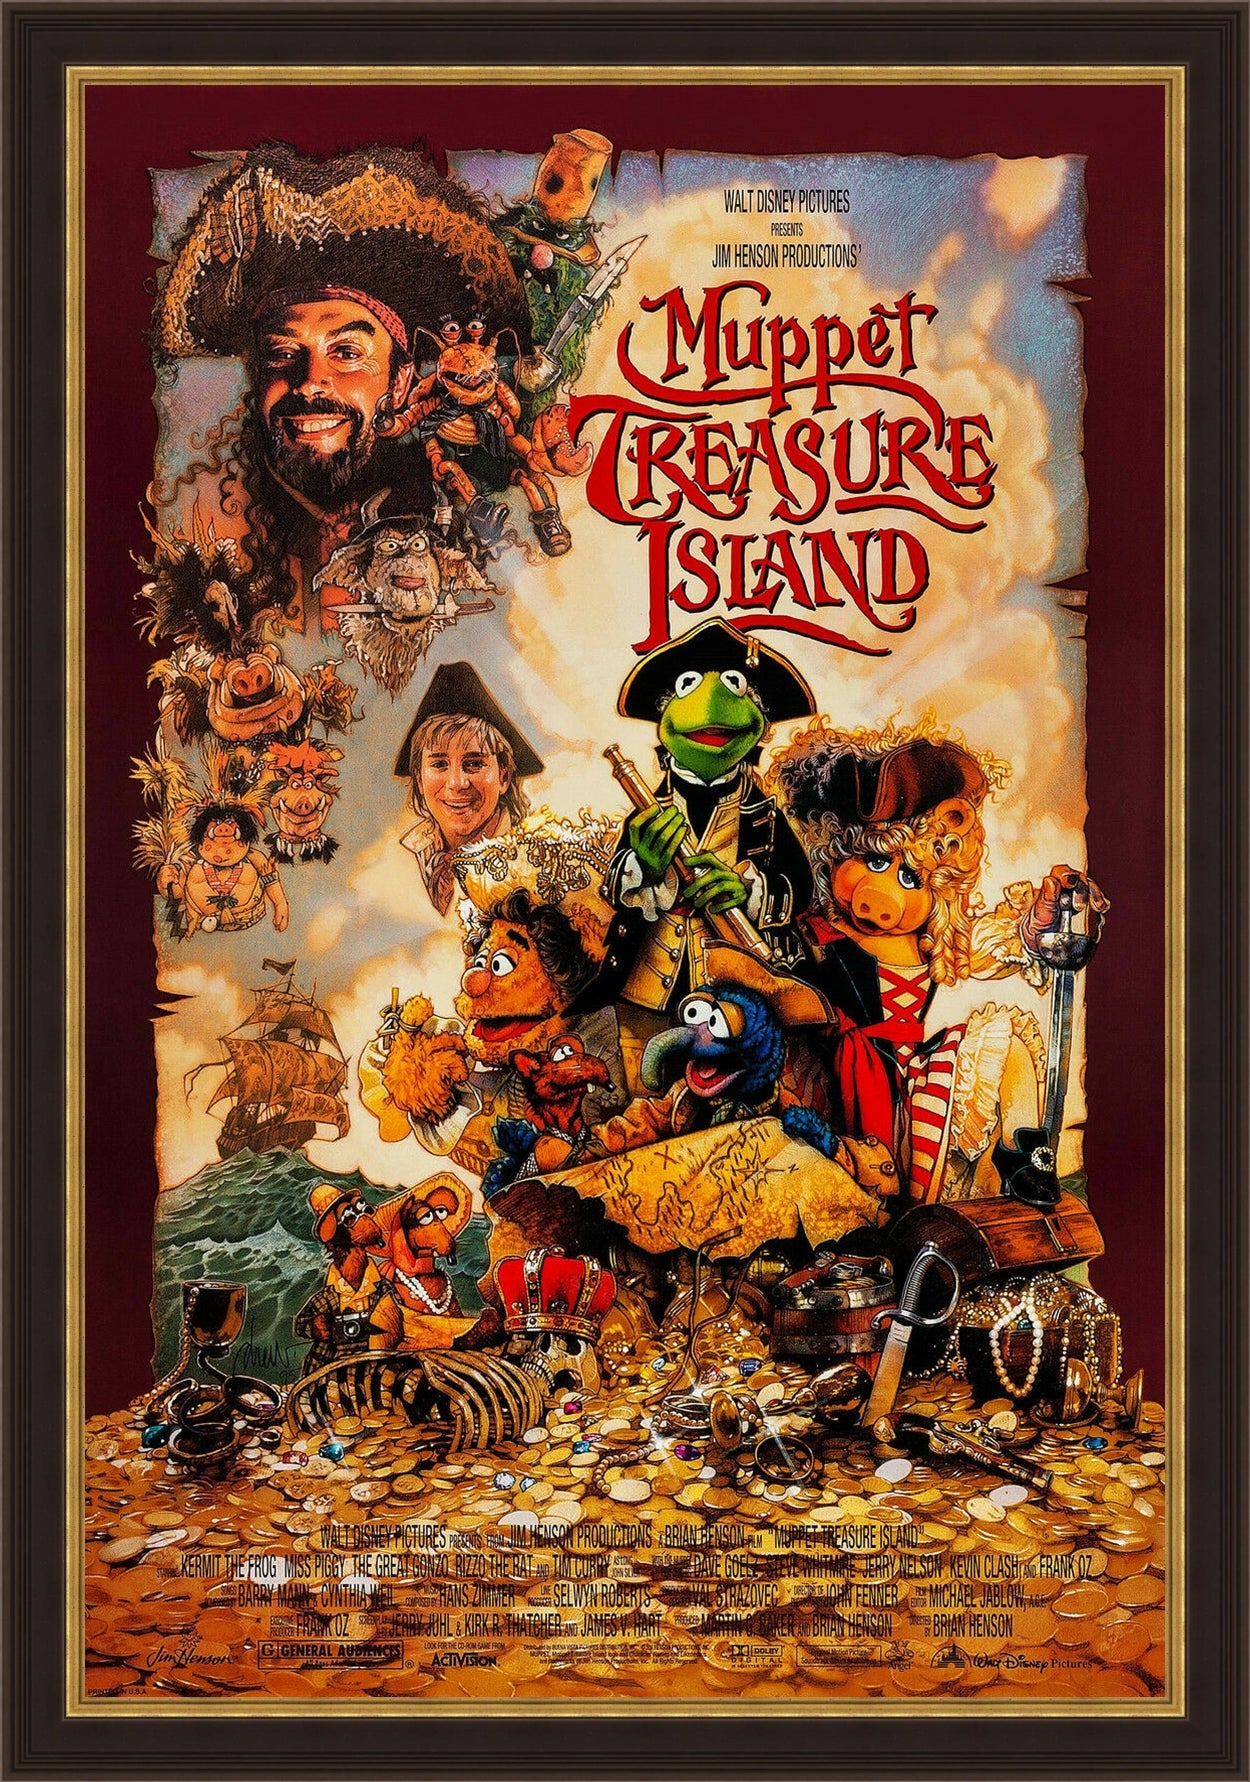 An original movie poster for the Jim Henson film Muppet Treasure Island